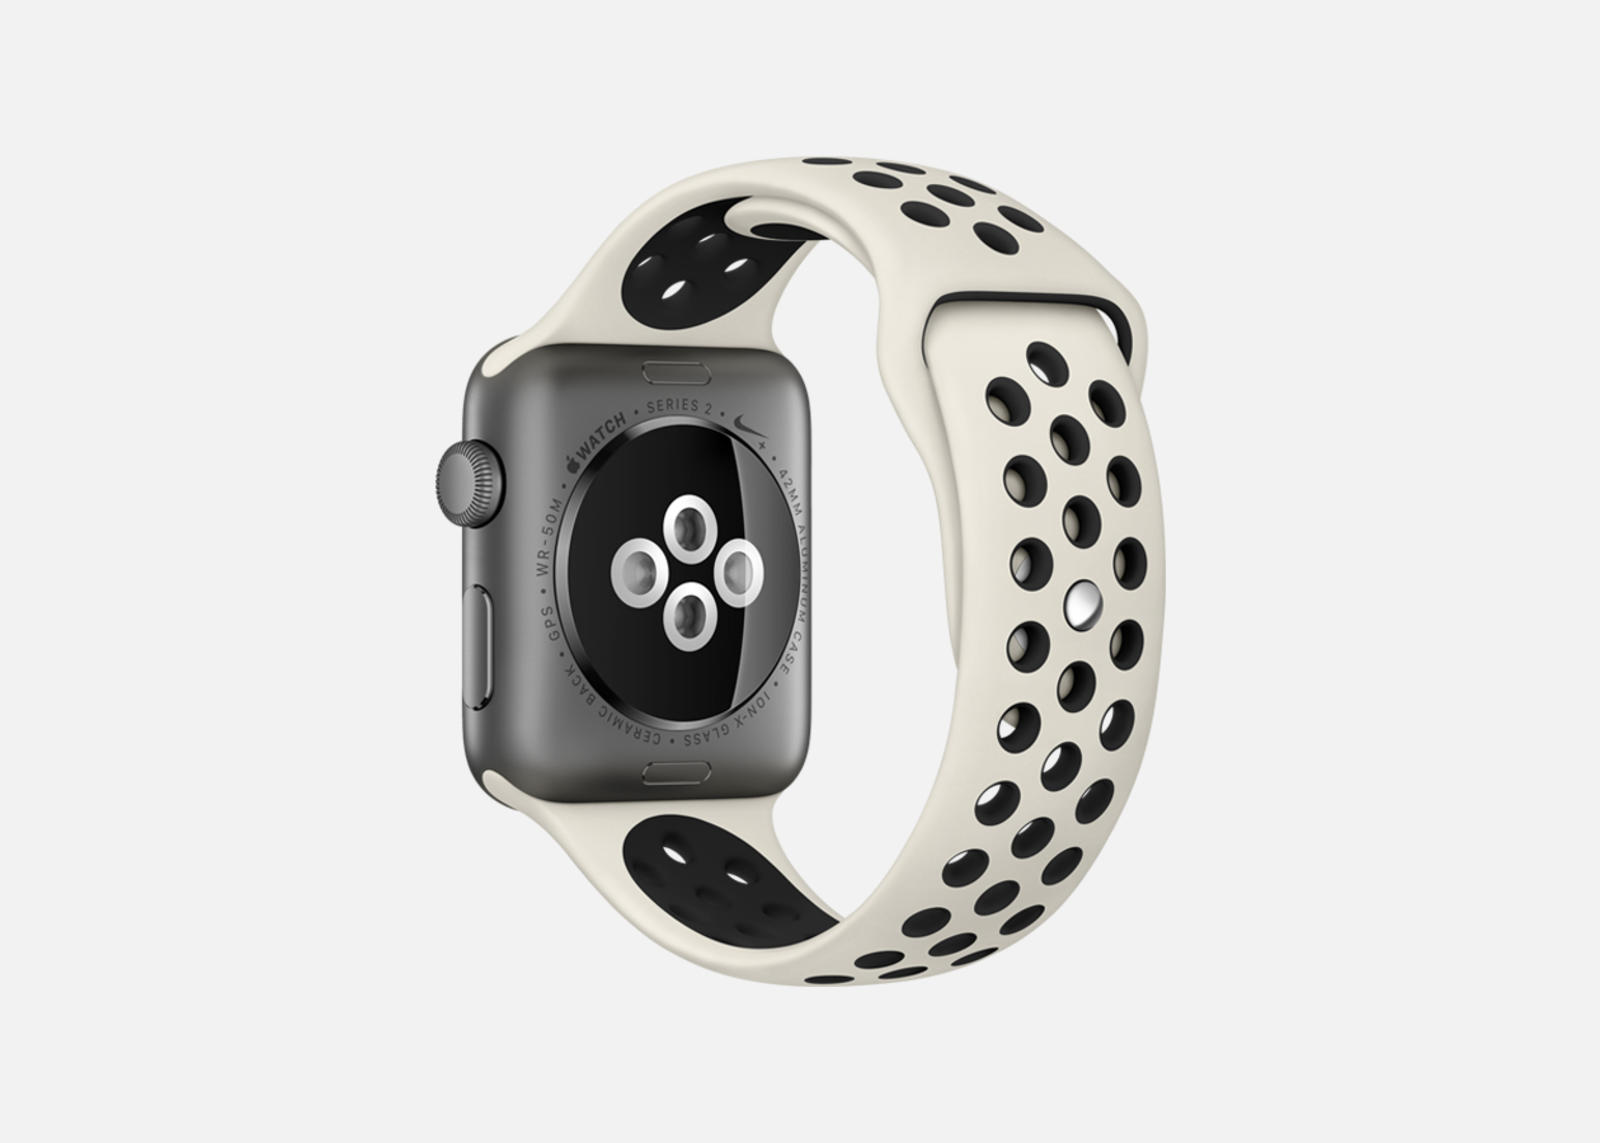 Apple watch nikelab 3 rectangle 1600